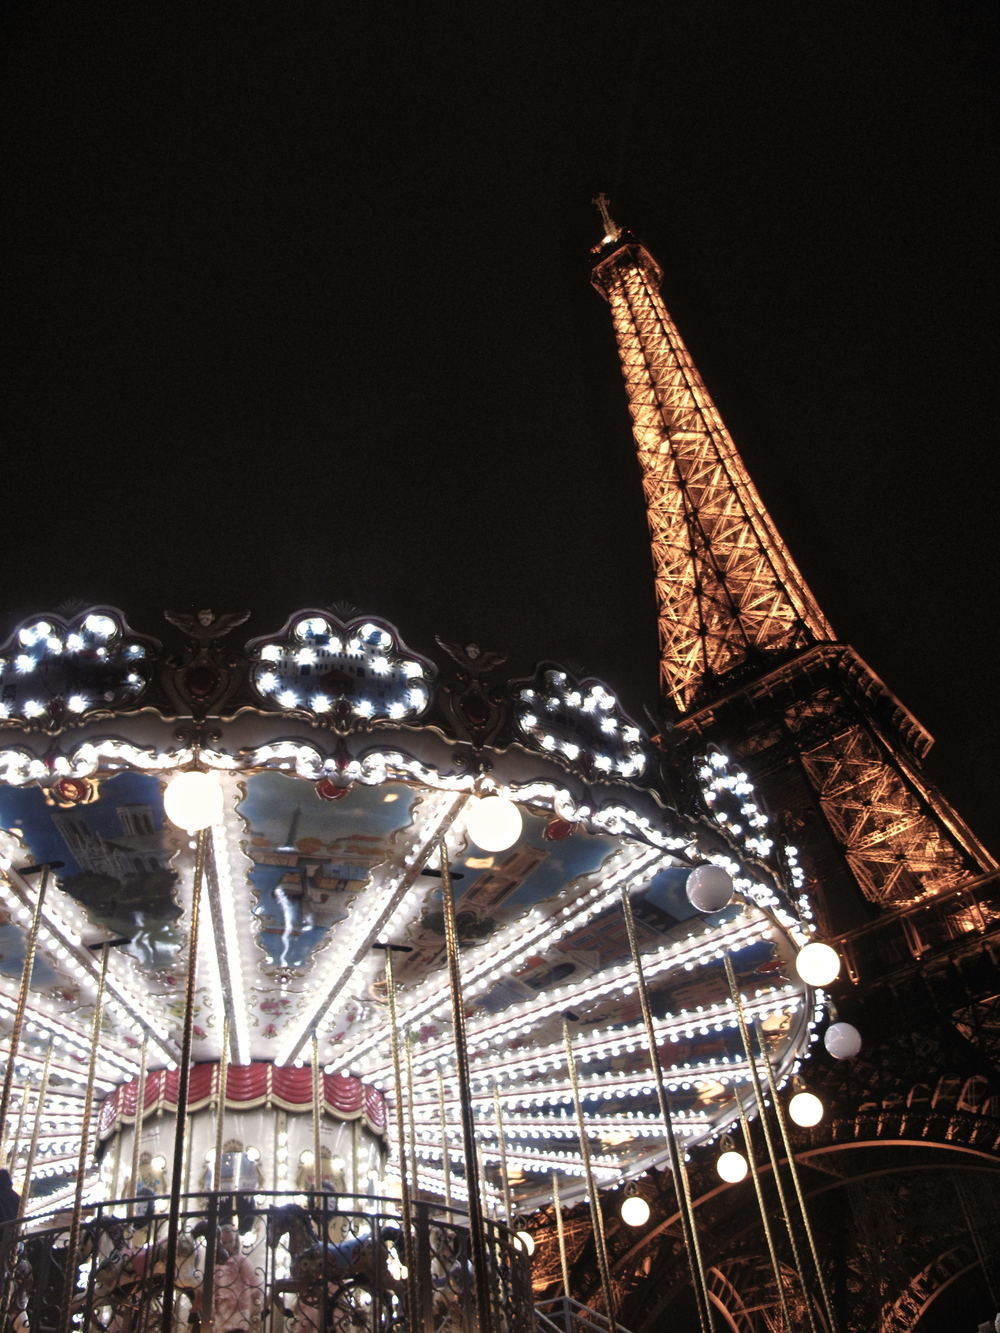 the Eiffel Tower at night lit up beside a carrousel